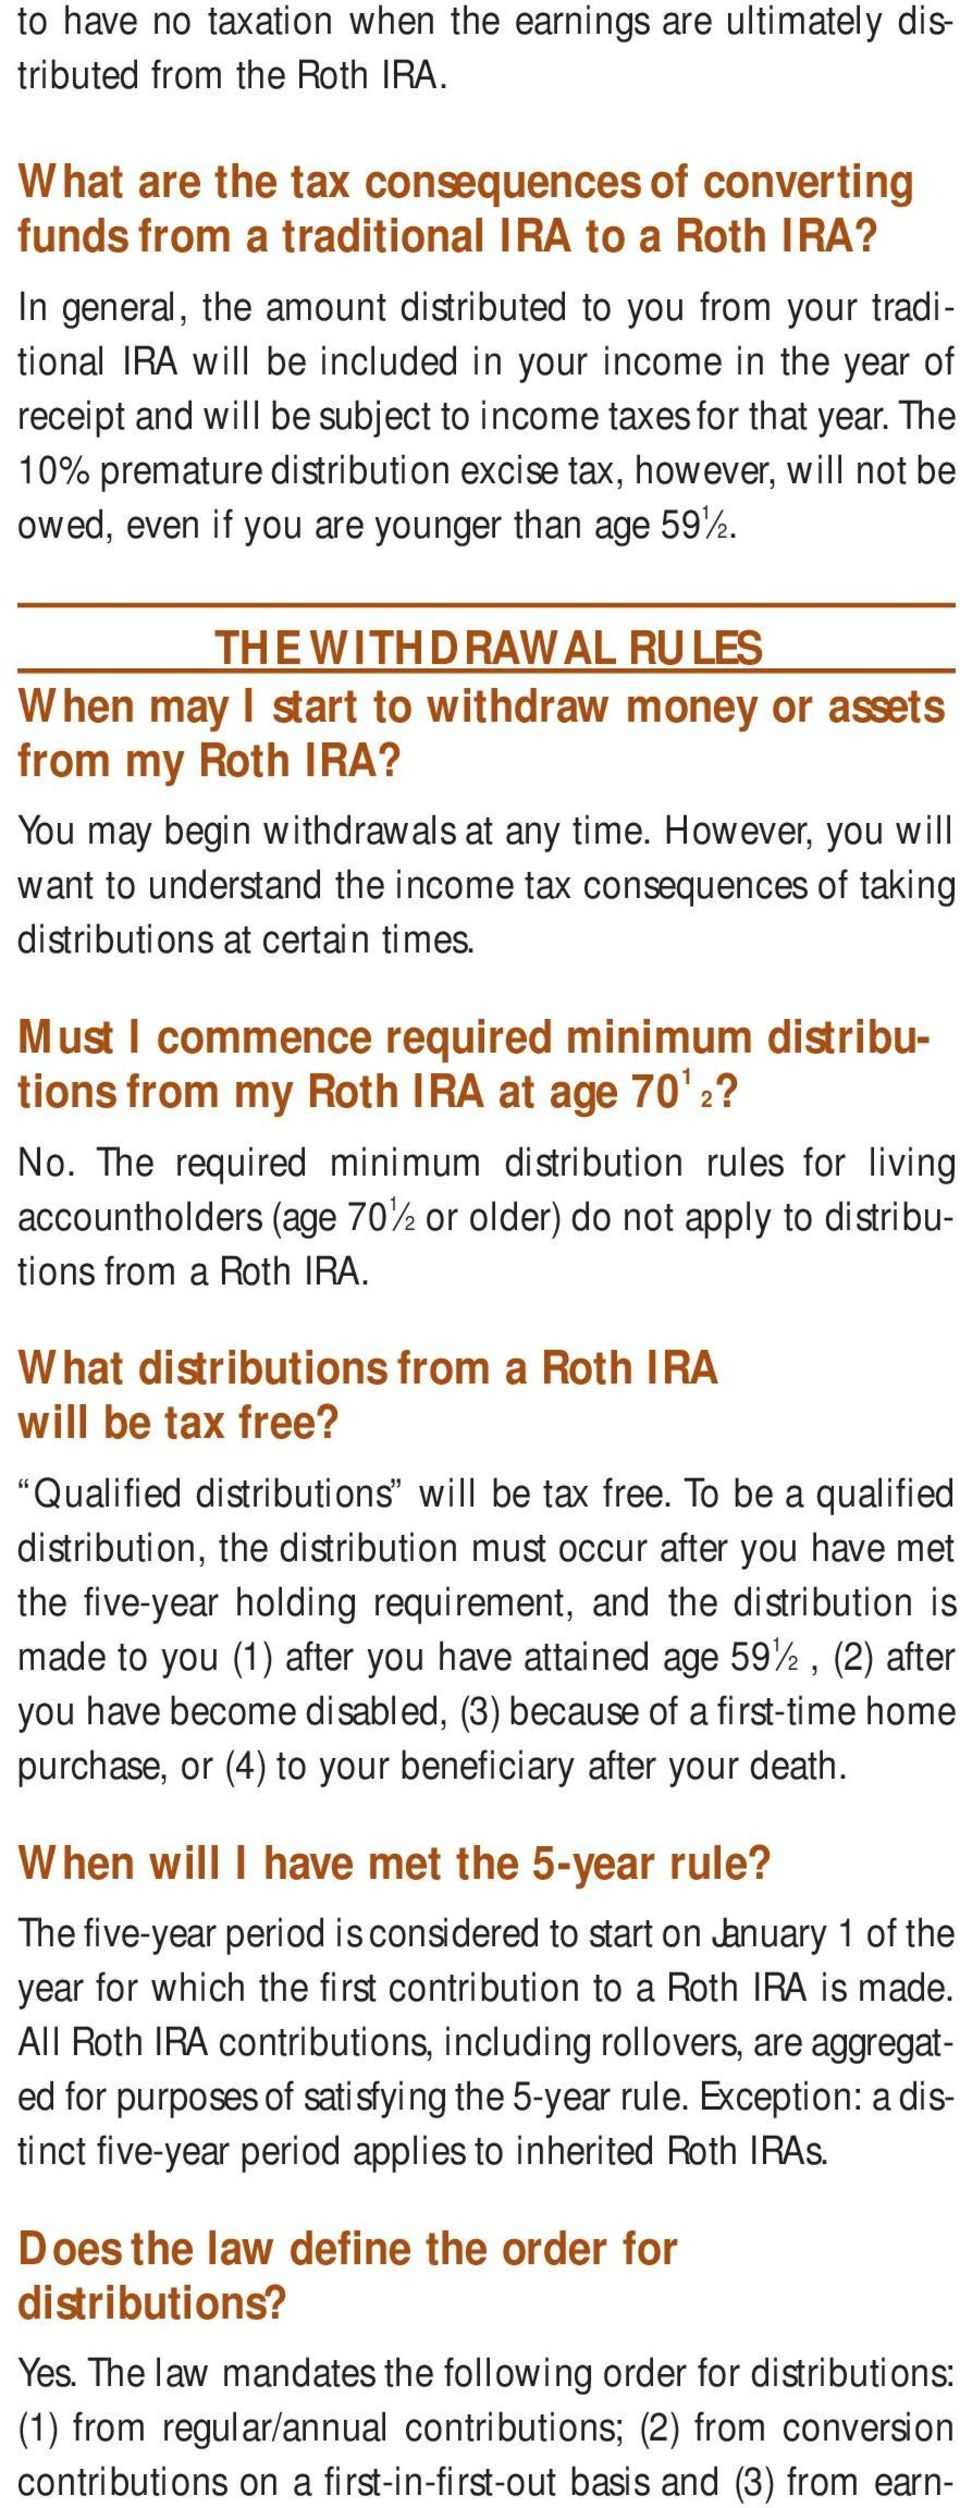 The 10% premature distribution excise tax, however, will not be owed, even if you are younger than age 59 1 2. THE WITHDRAWAL RULES When may I start to withdraw money or assets from my Roth IRA?